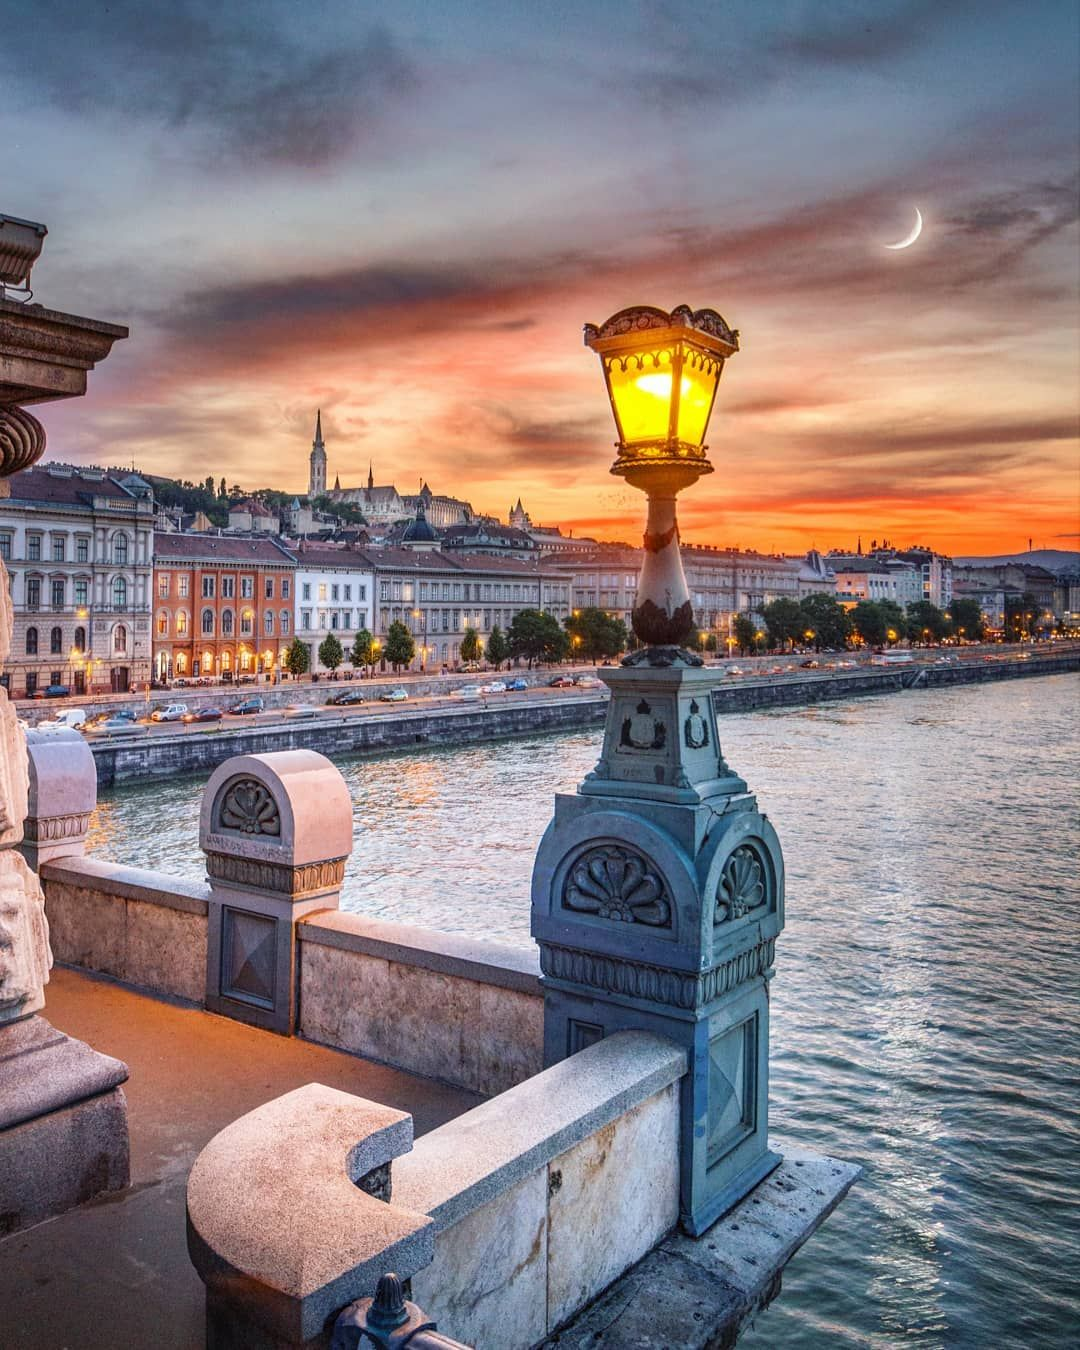 Summer Nights In Budapest Are So Special Imagine Walking Here On